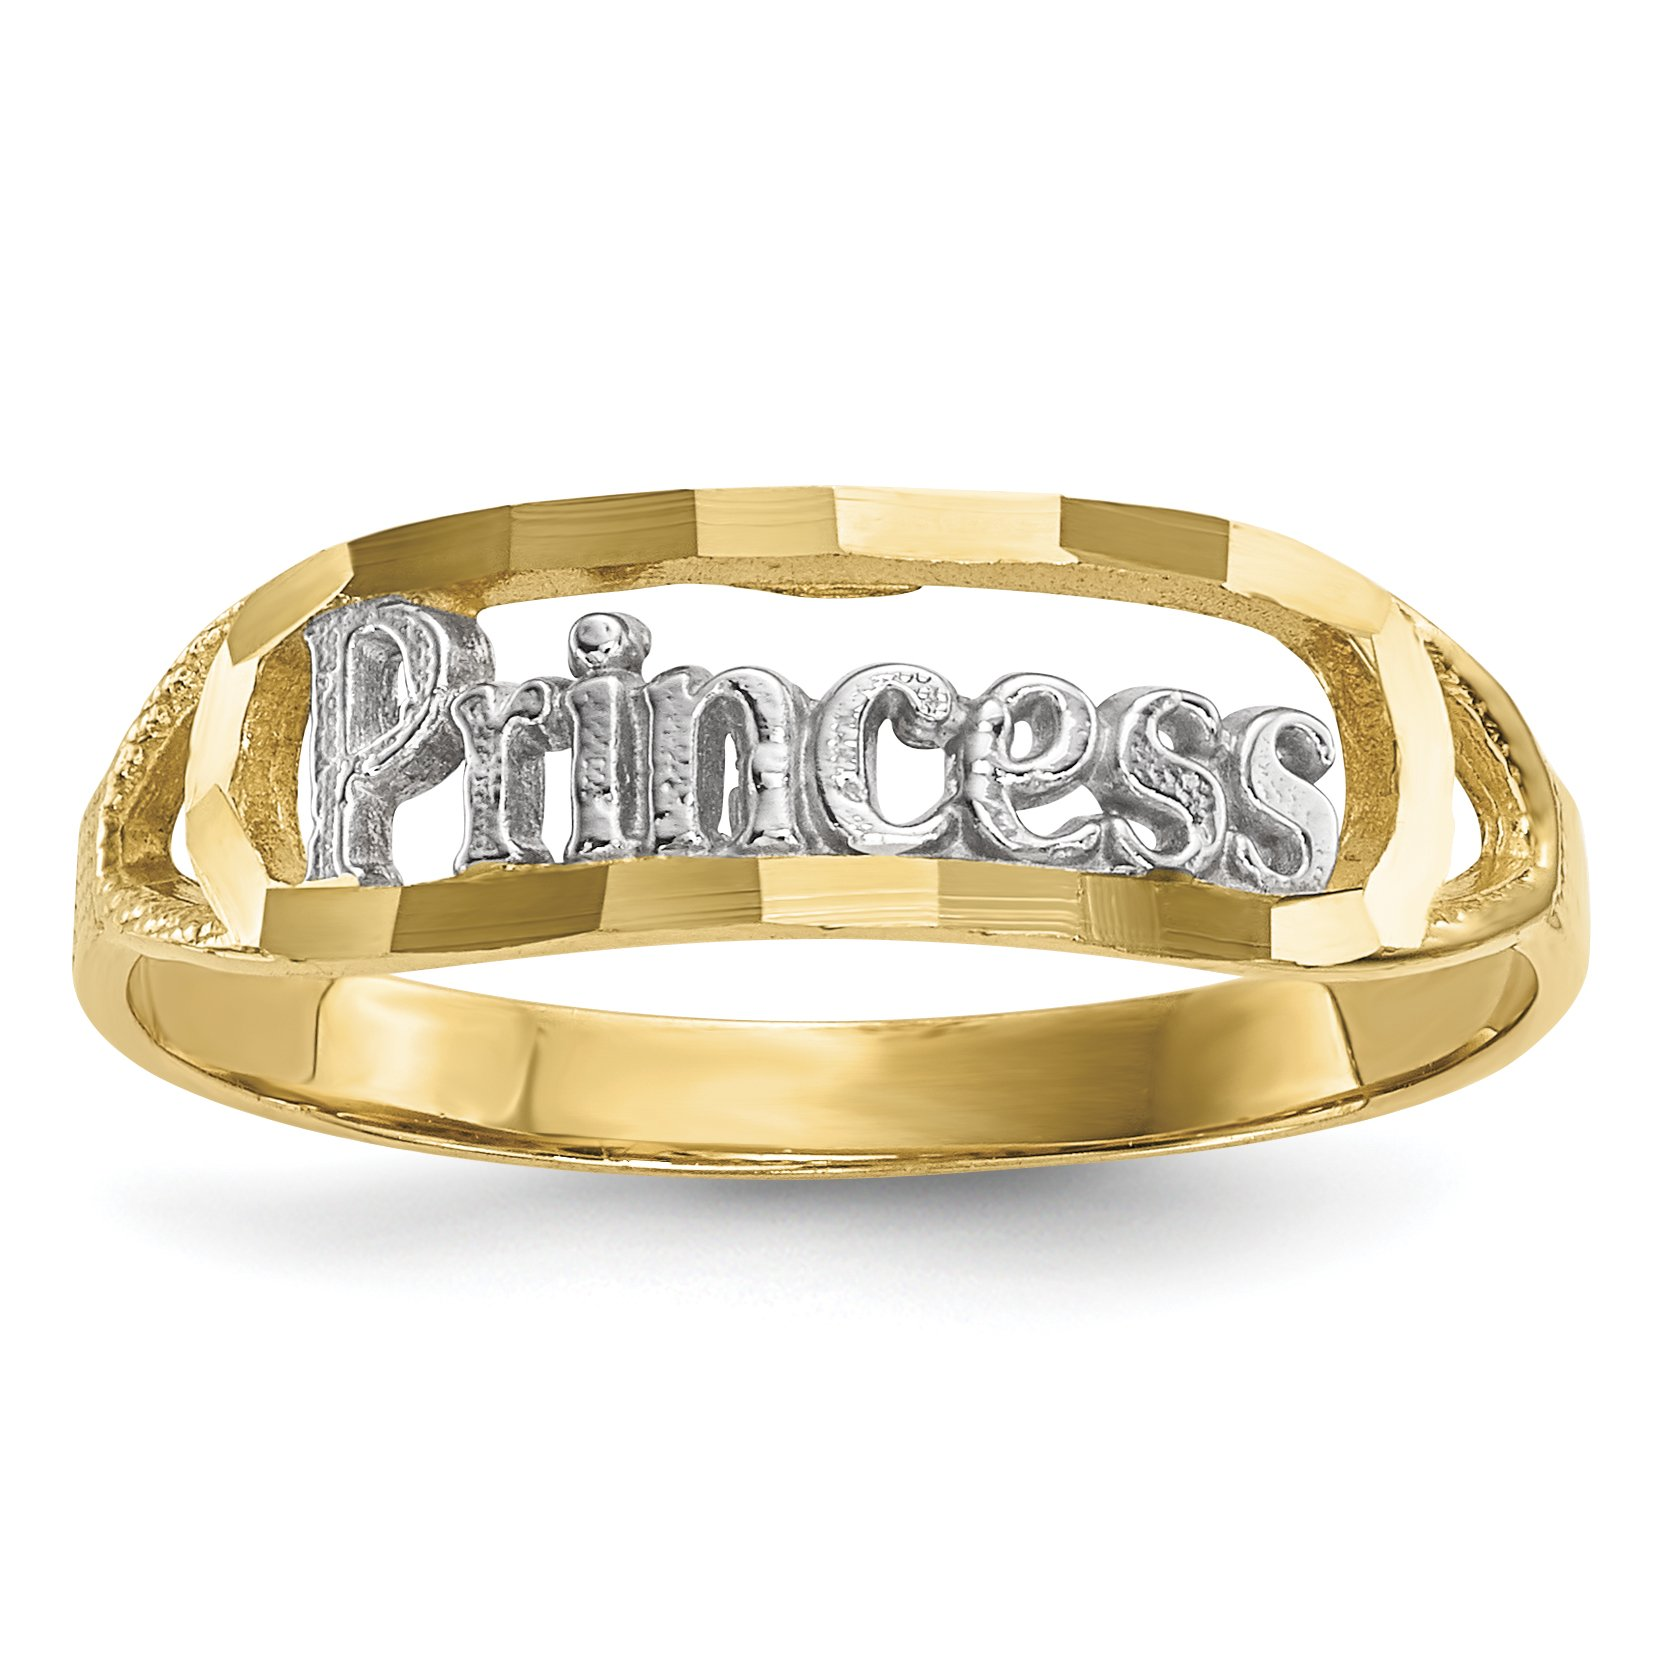 ICE CARATS 14k Yellow Gold Princess Band Ring Size 7.00 Fine Jewelry Gift Set For Women Heart